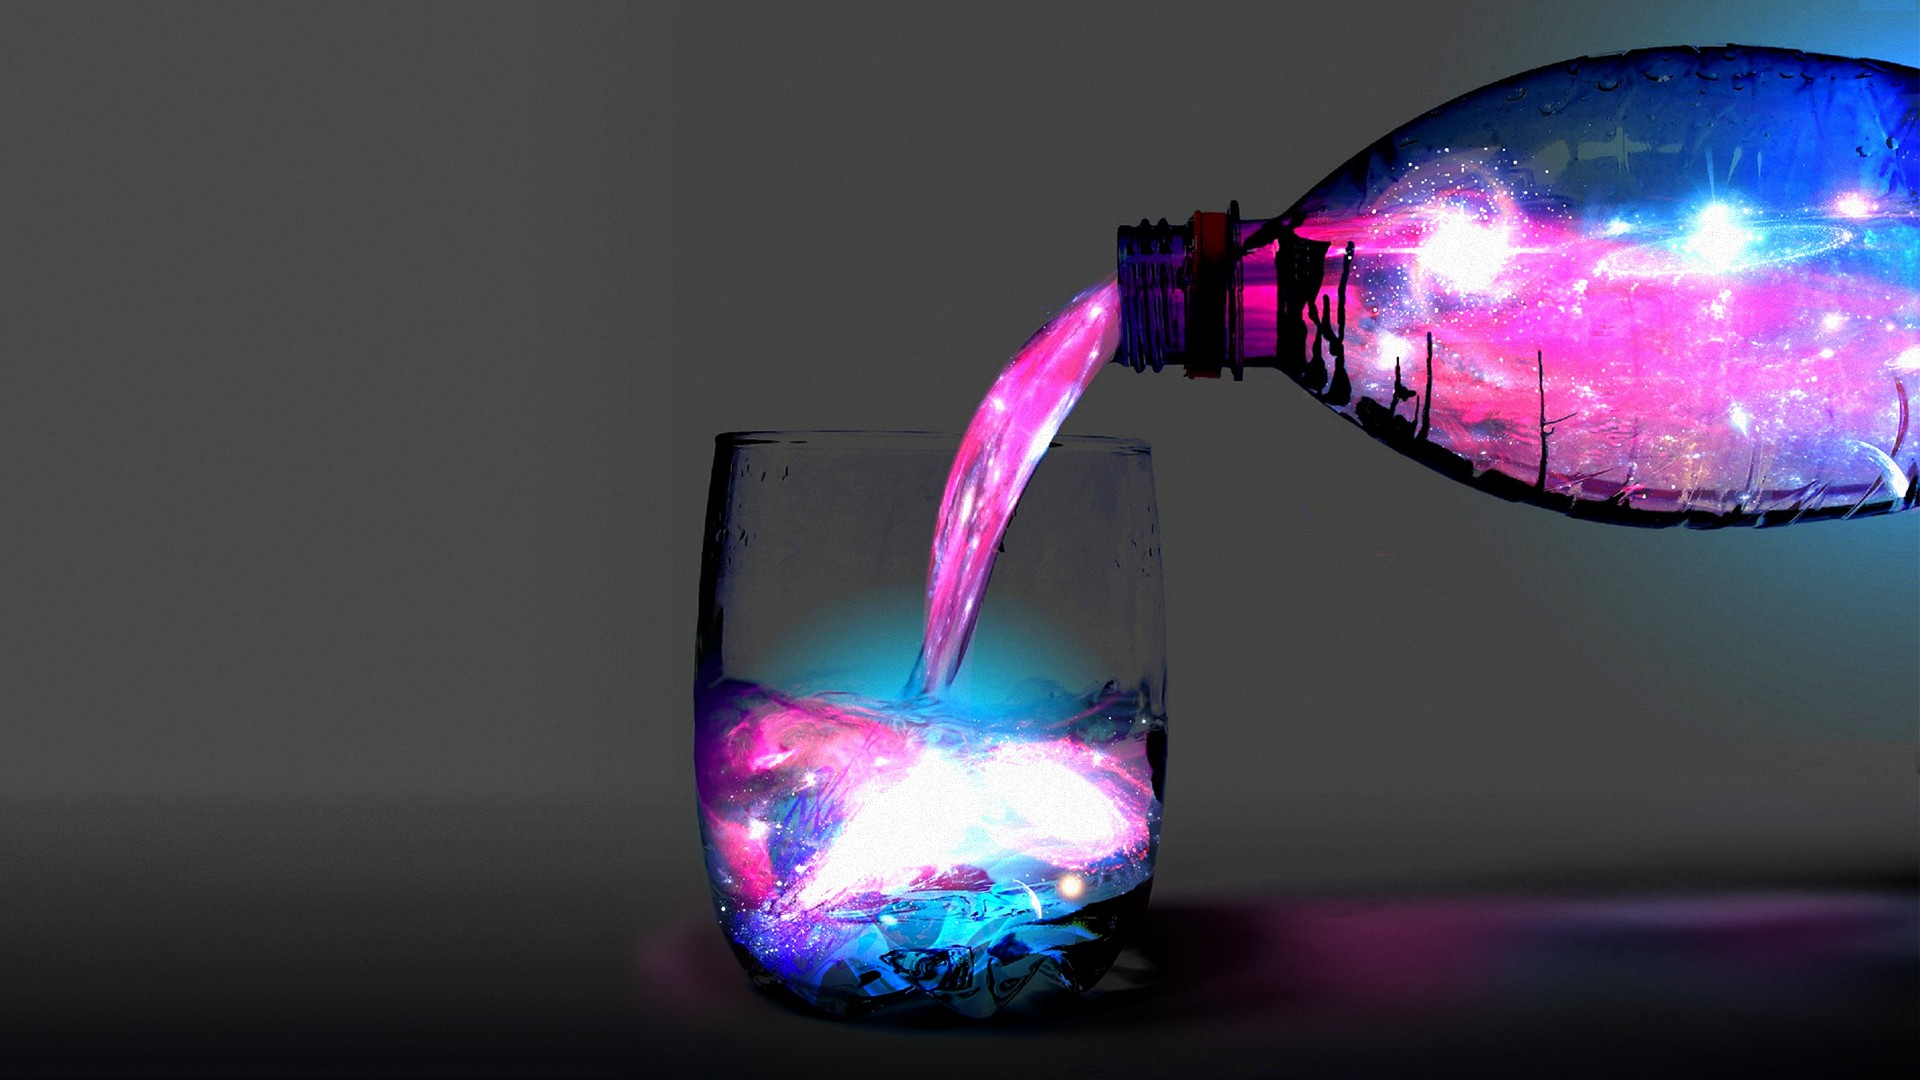 Cool Bottle Wallpaper